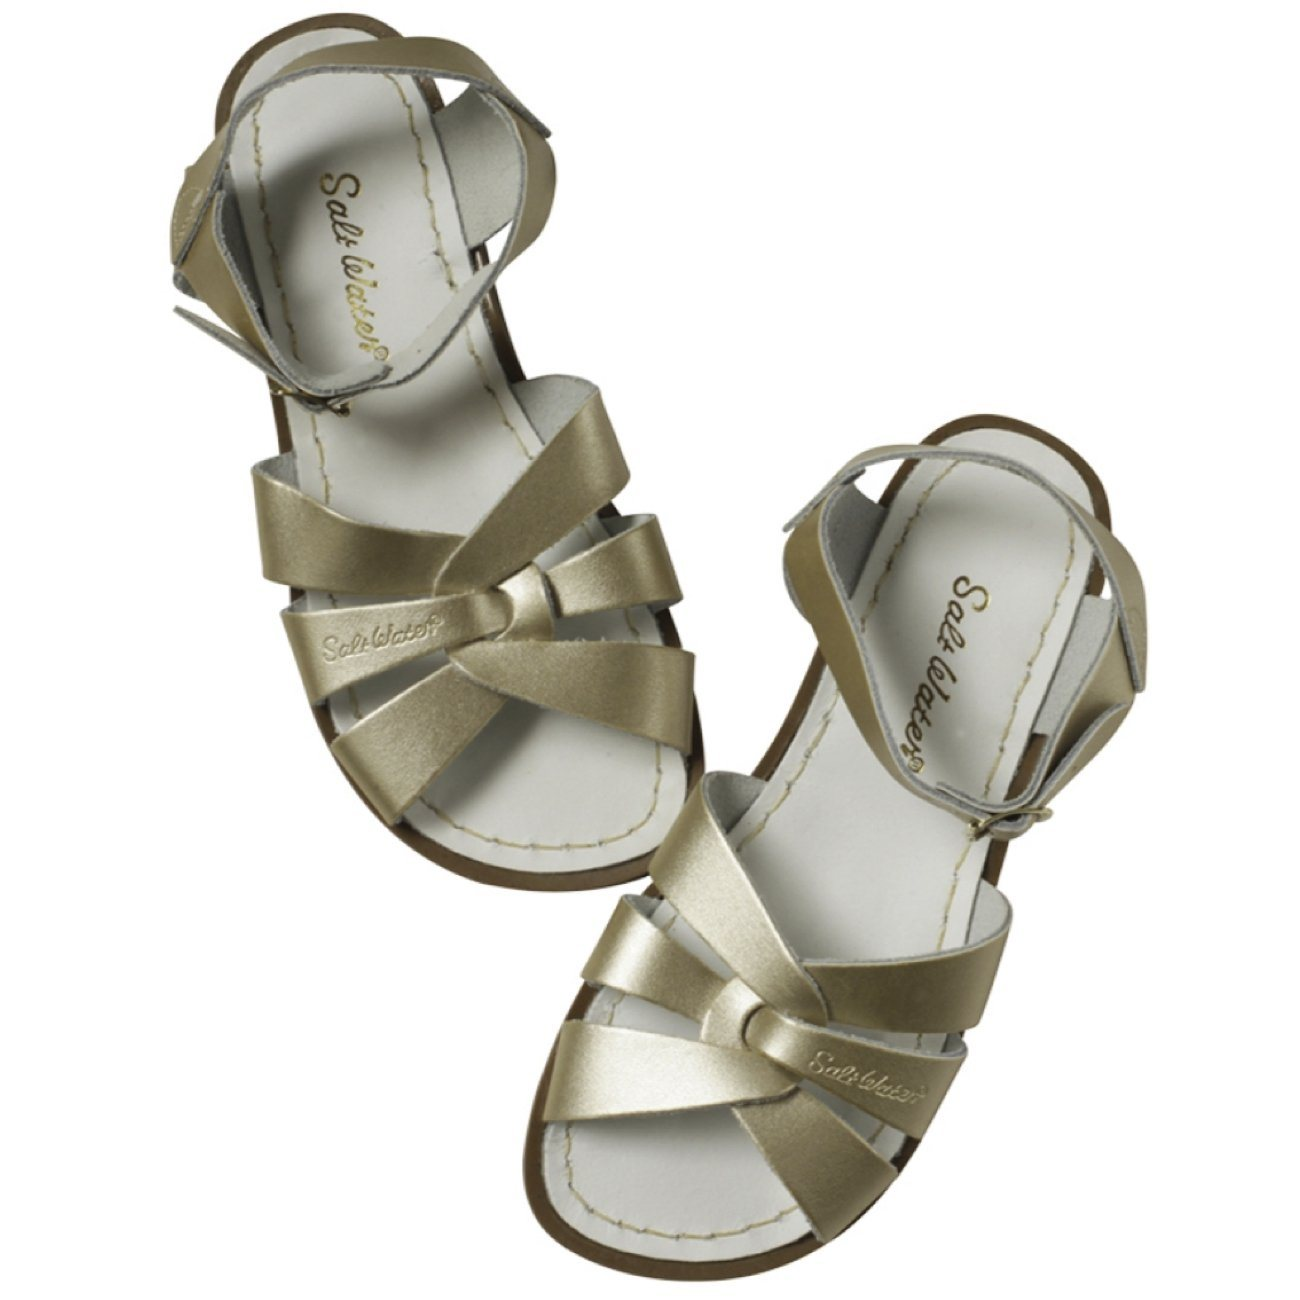 Salt Water Sandals, Original, Adults, Gold Sandals Salt Water Sandals Gold Adult 5 / Aus Womens 7